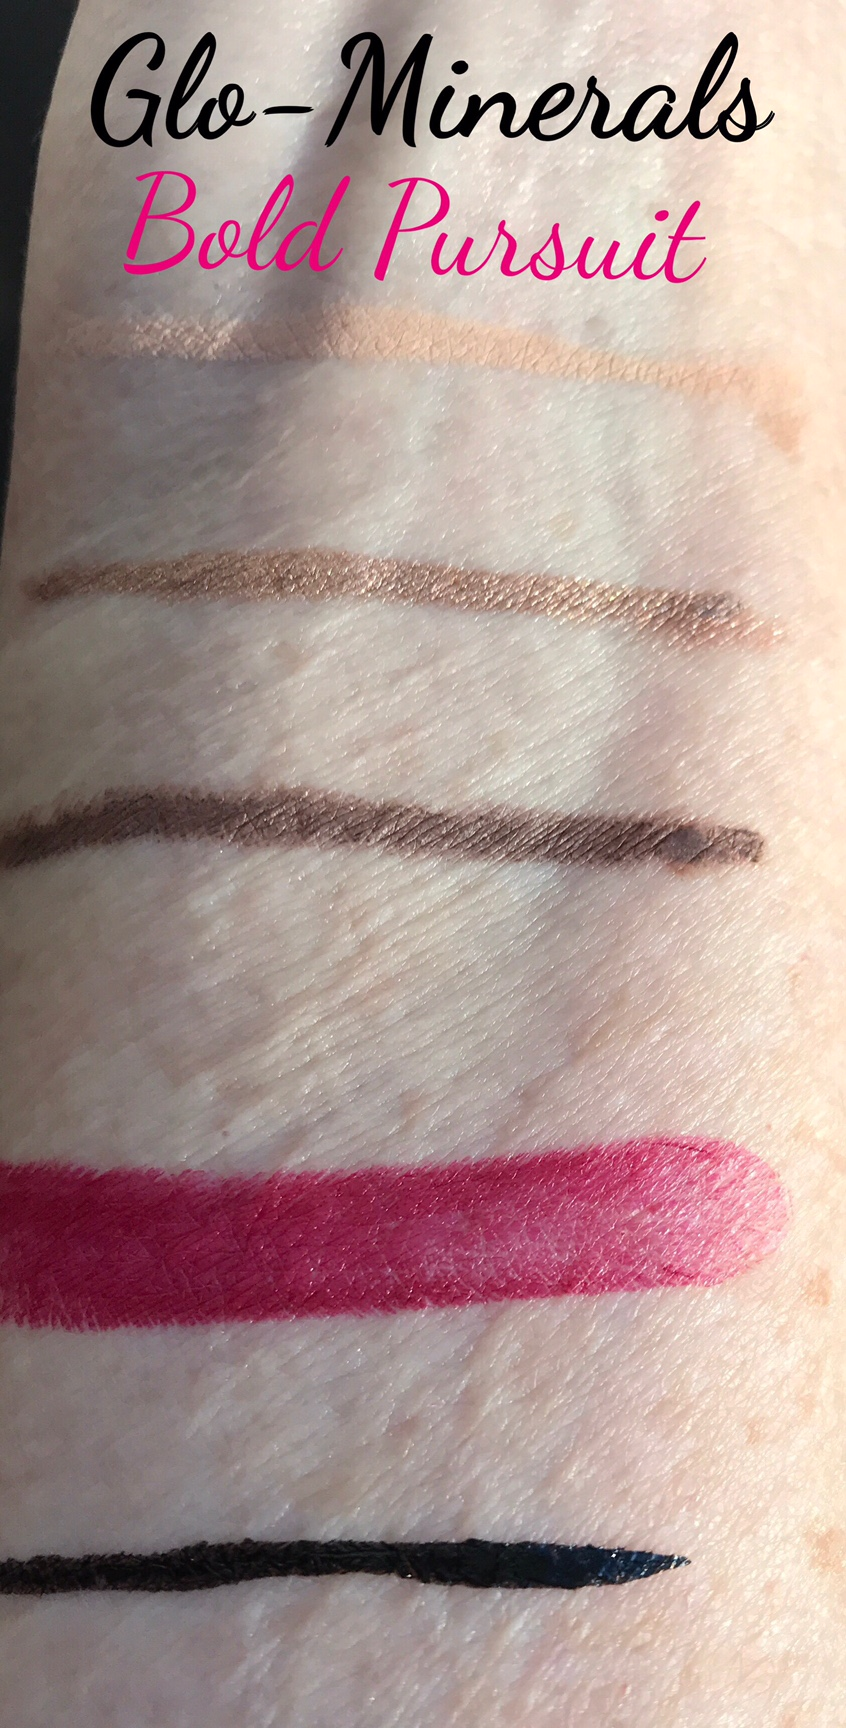 GloMinerals Bold Pursuit holiday makeup collection 2016 swatches neversaydiebeauty.com